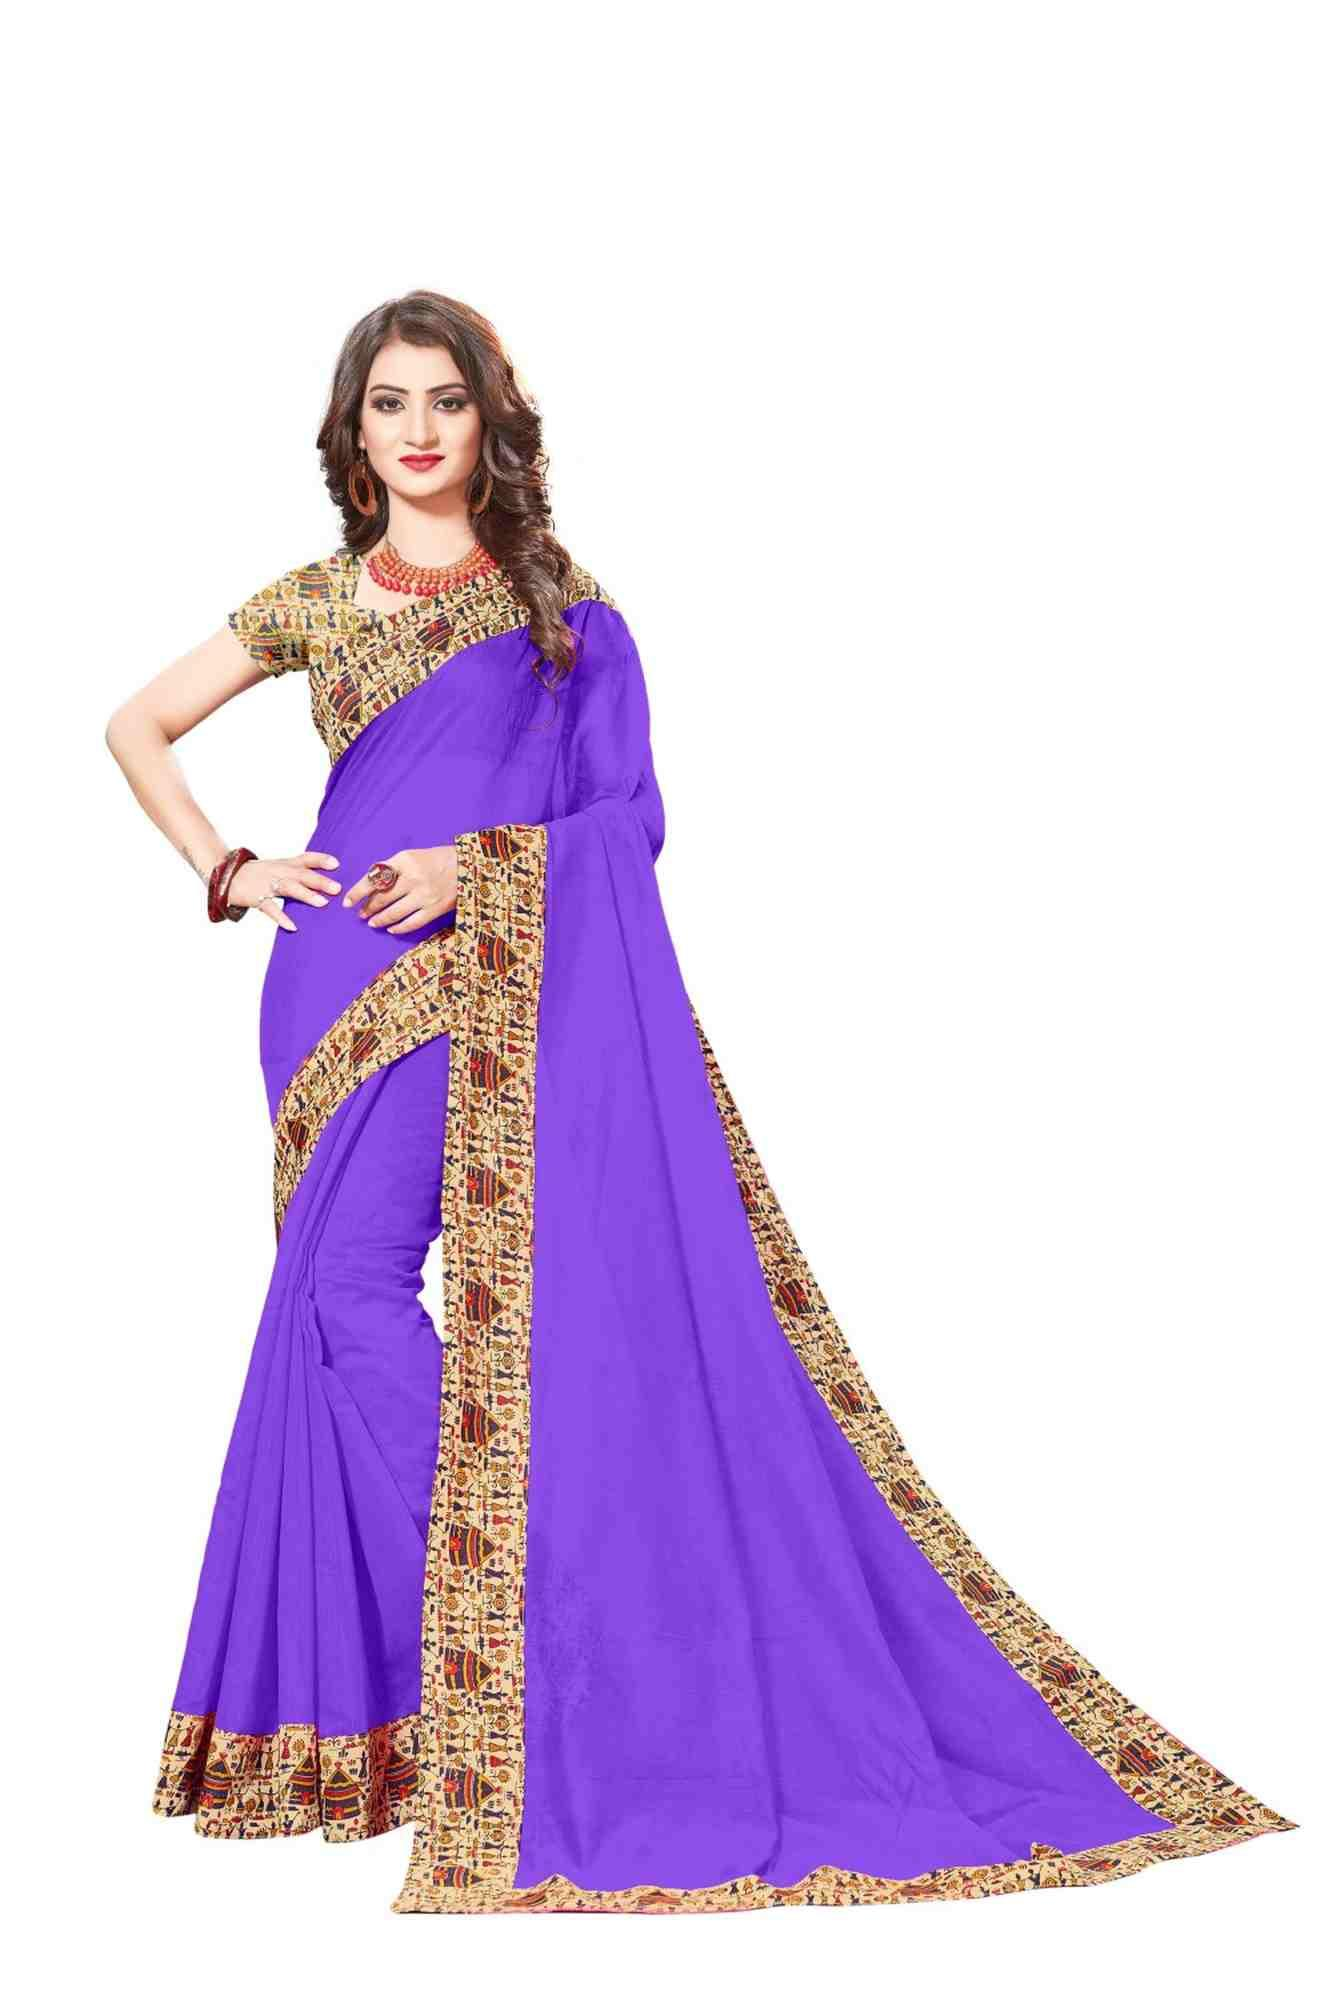 Queen's Gorgeous Chanderi Lace Border Regular Saree